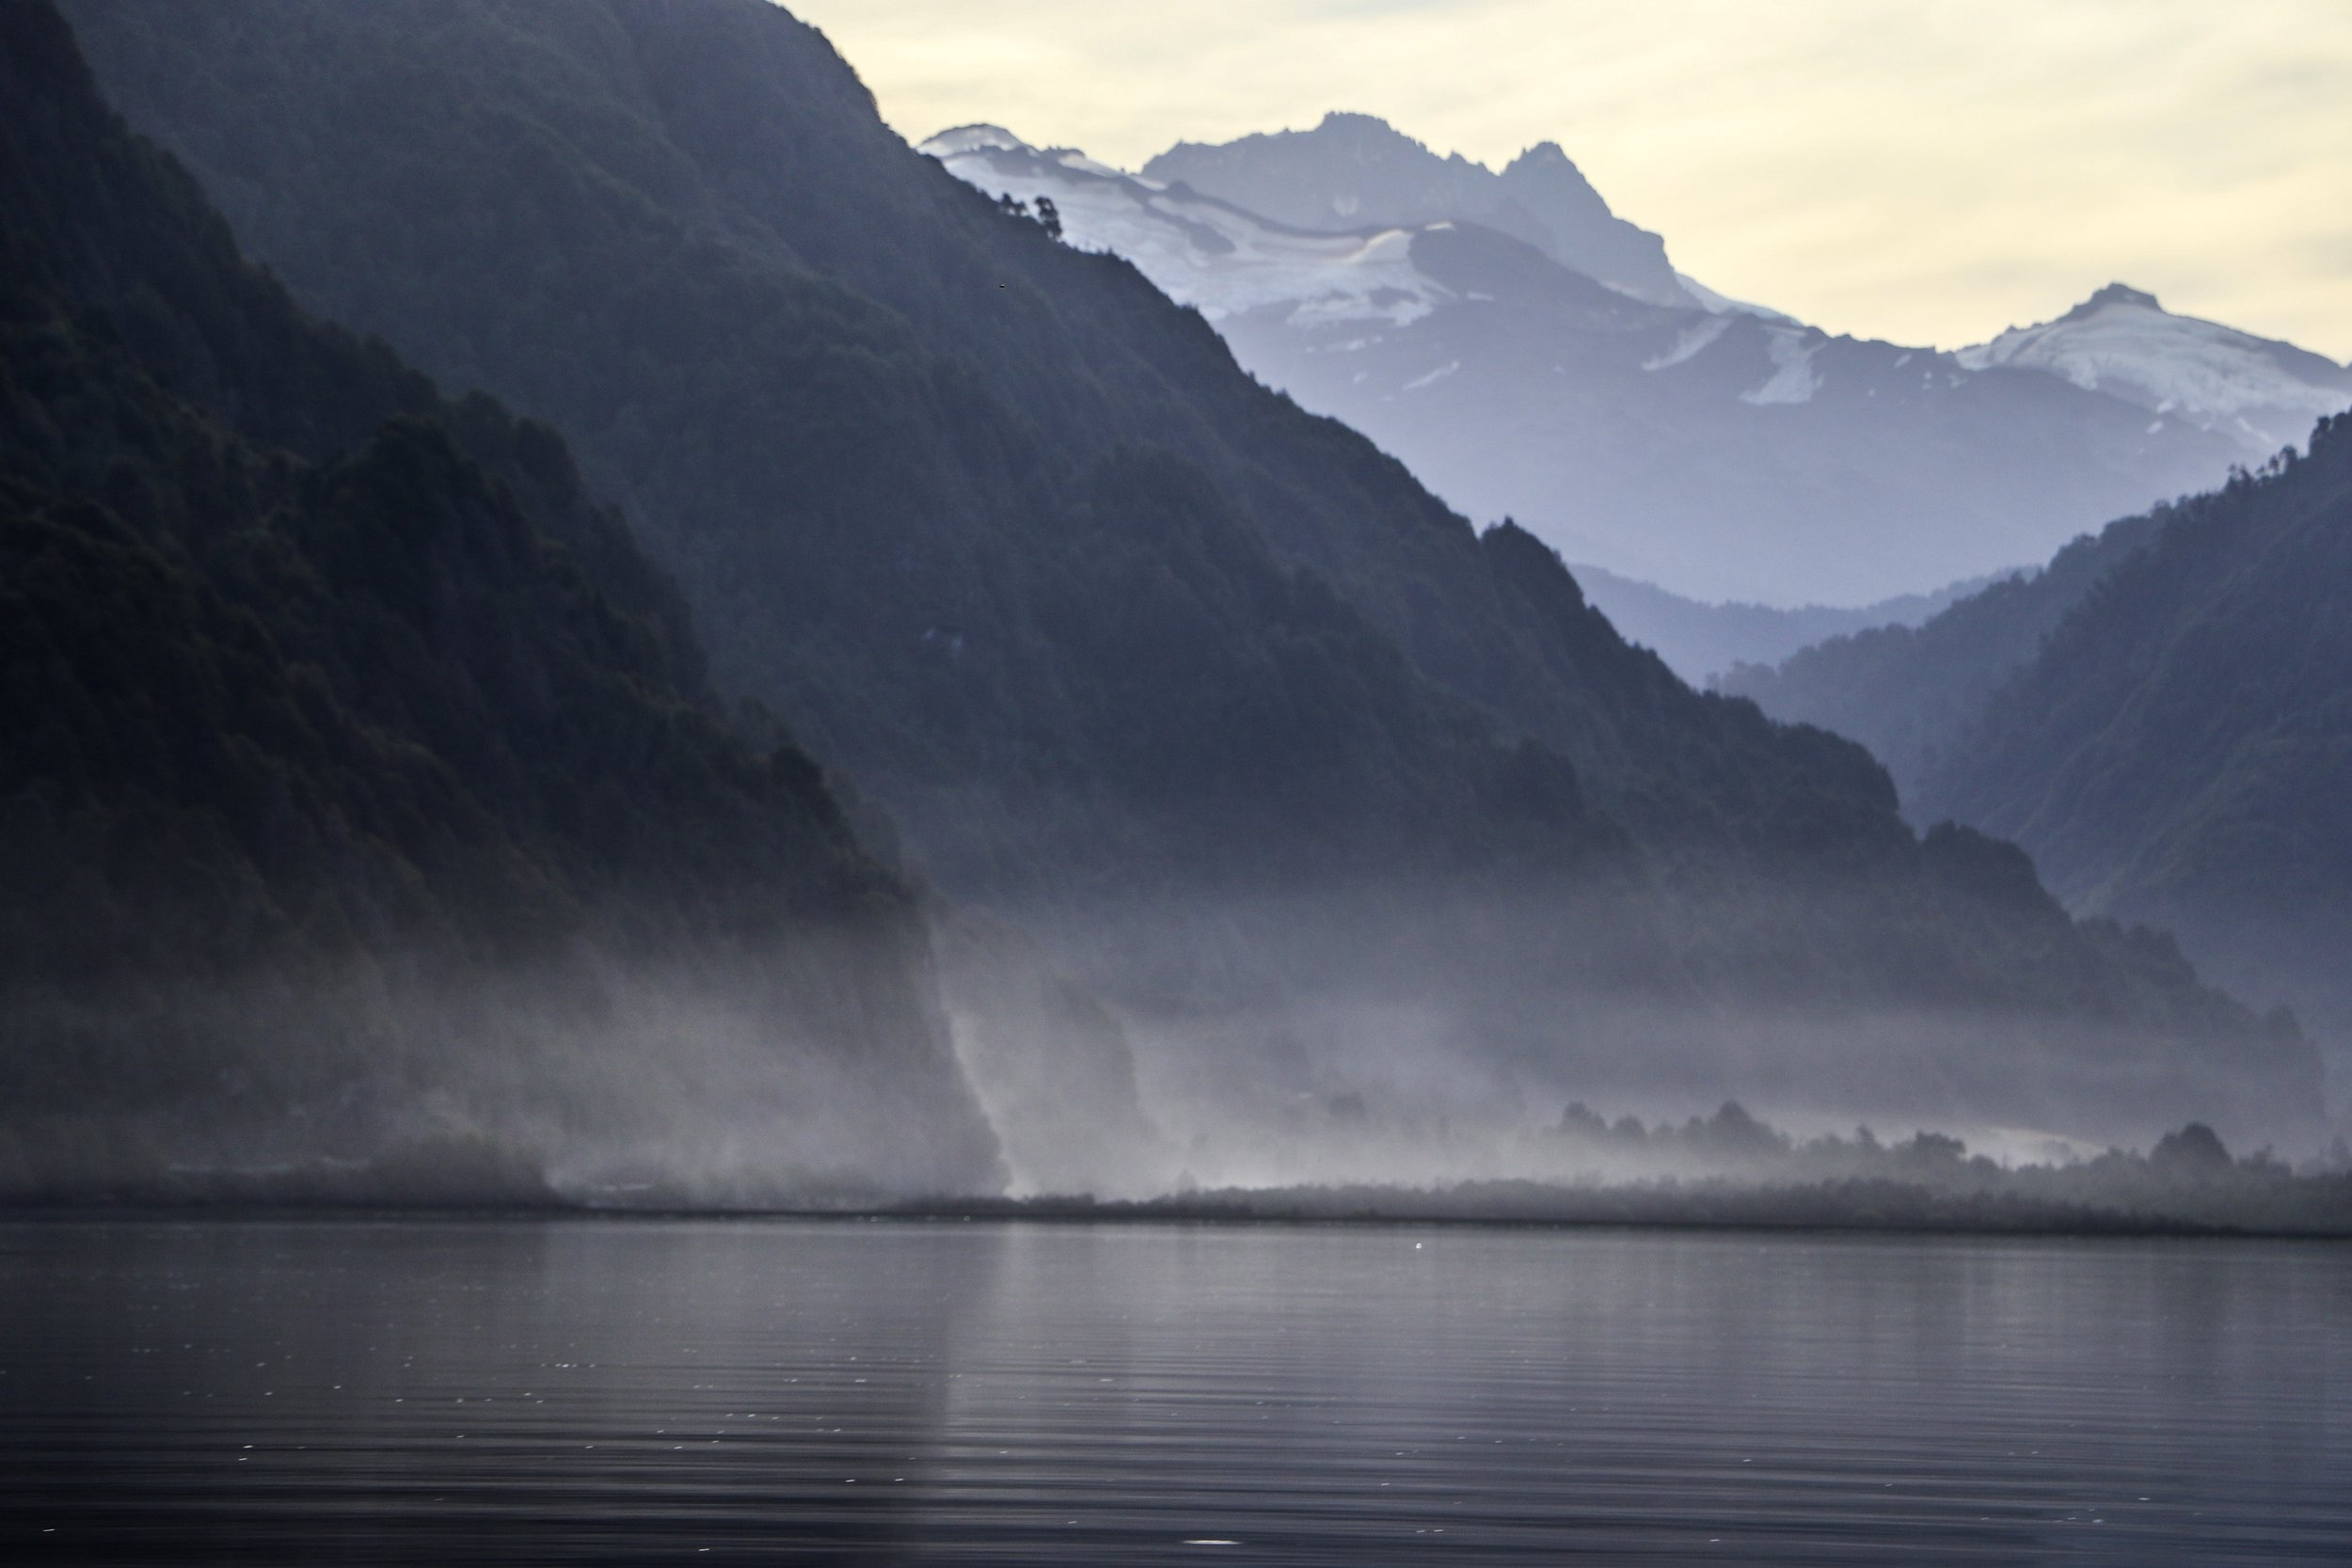 If you have the opportunity to fish Lago Yelcho when its glassy, stay late and keep casting!